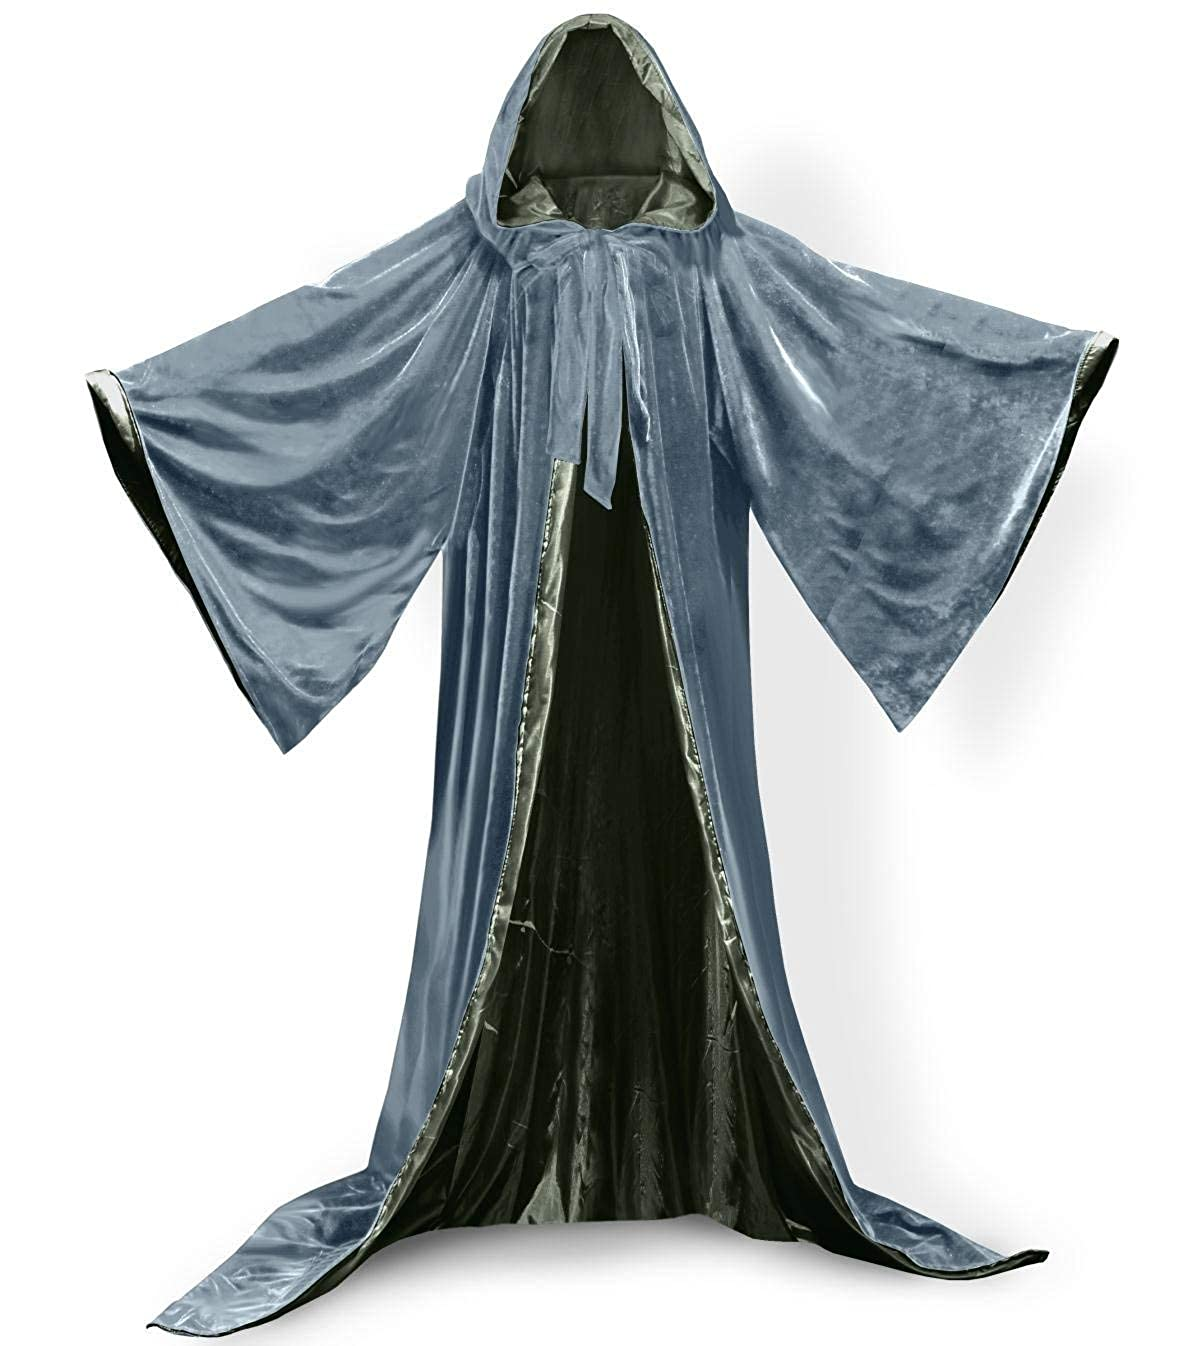 Silverolive Green XXL ShineGown Silver Medieval Wizard Robe with Hoods Halloween Cloak Long Sleeves Velvet Unisex Masquerade for Christmas Party Costume Ball Gothic Full Length Cape Cosplay Fancy Coat Many colors